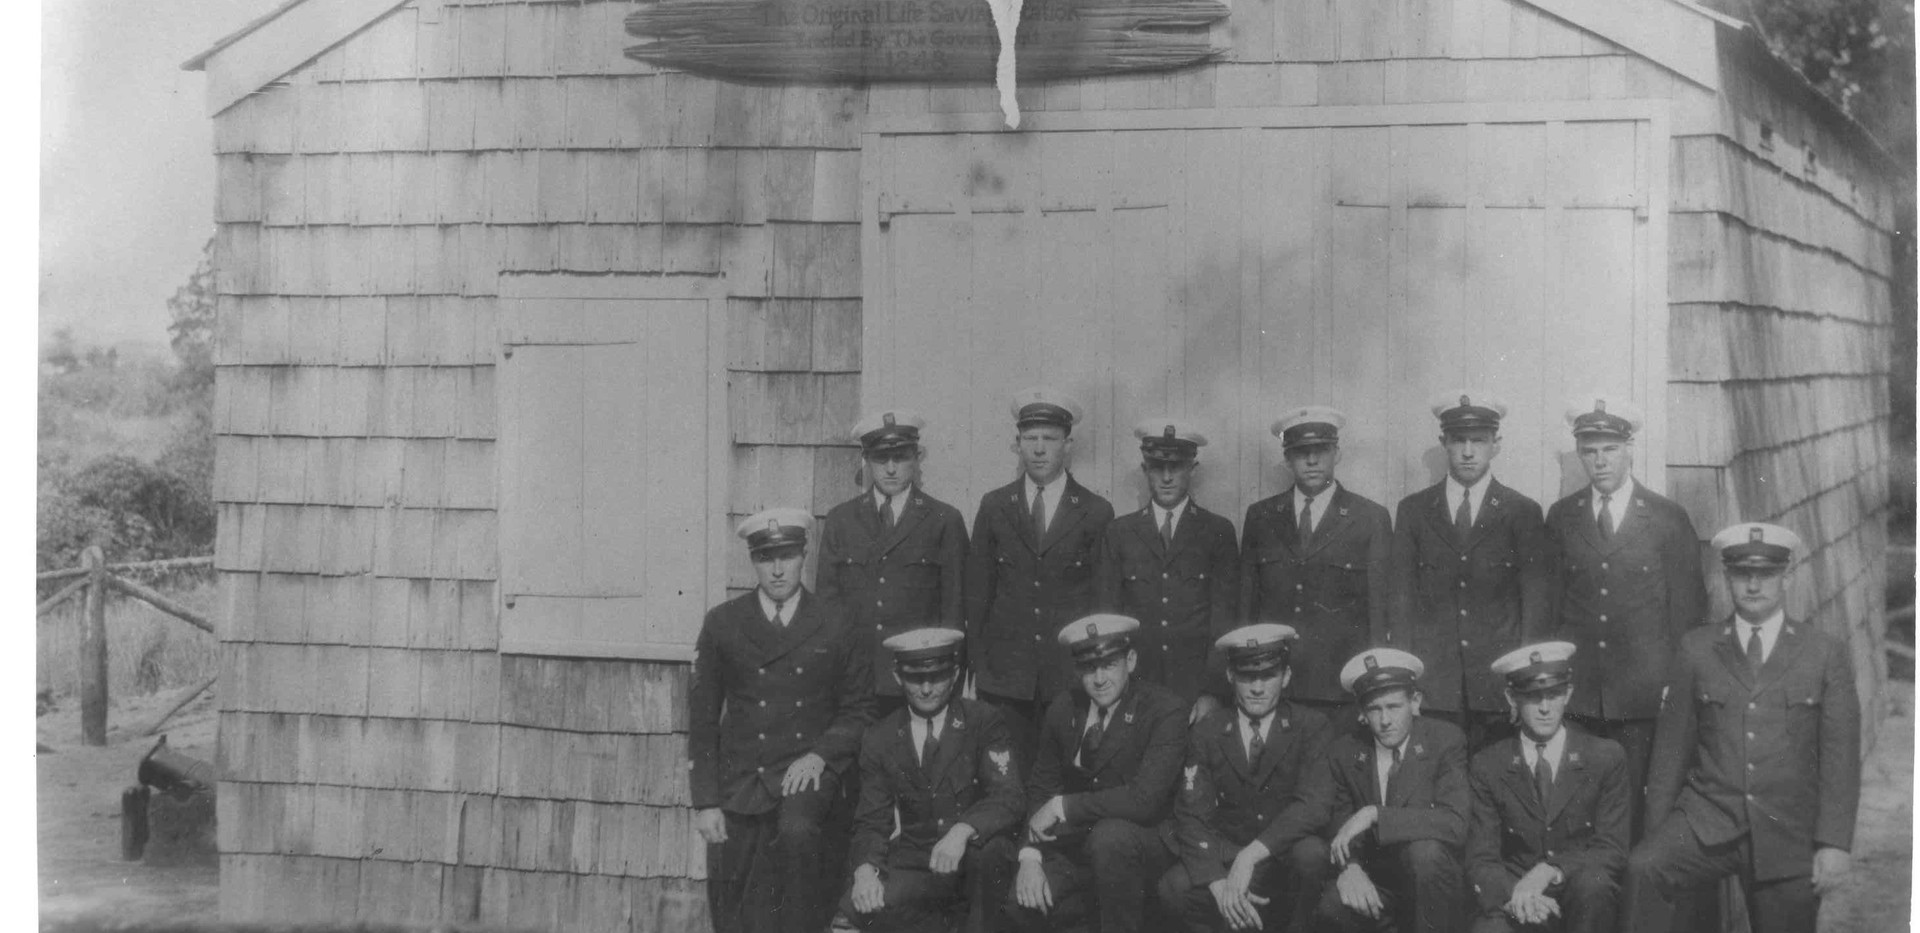 CG Crew at Spermaceti Cove LSS 1930.jpg